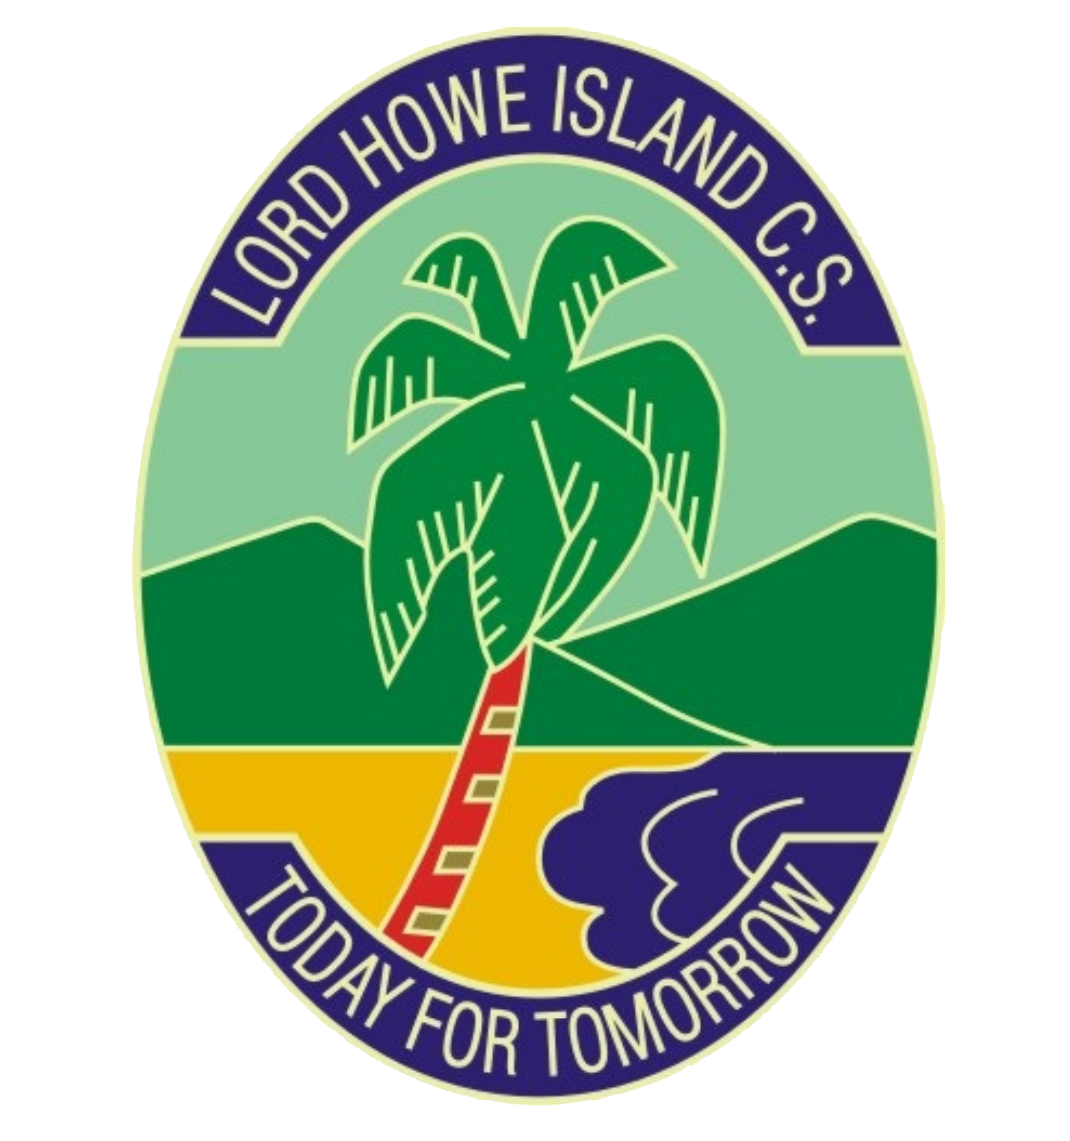 Lord Howe Island Central School logo